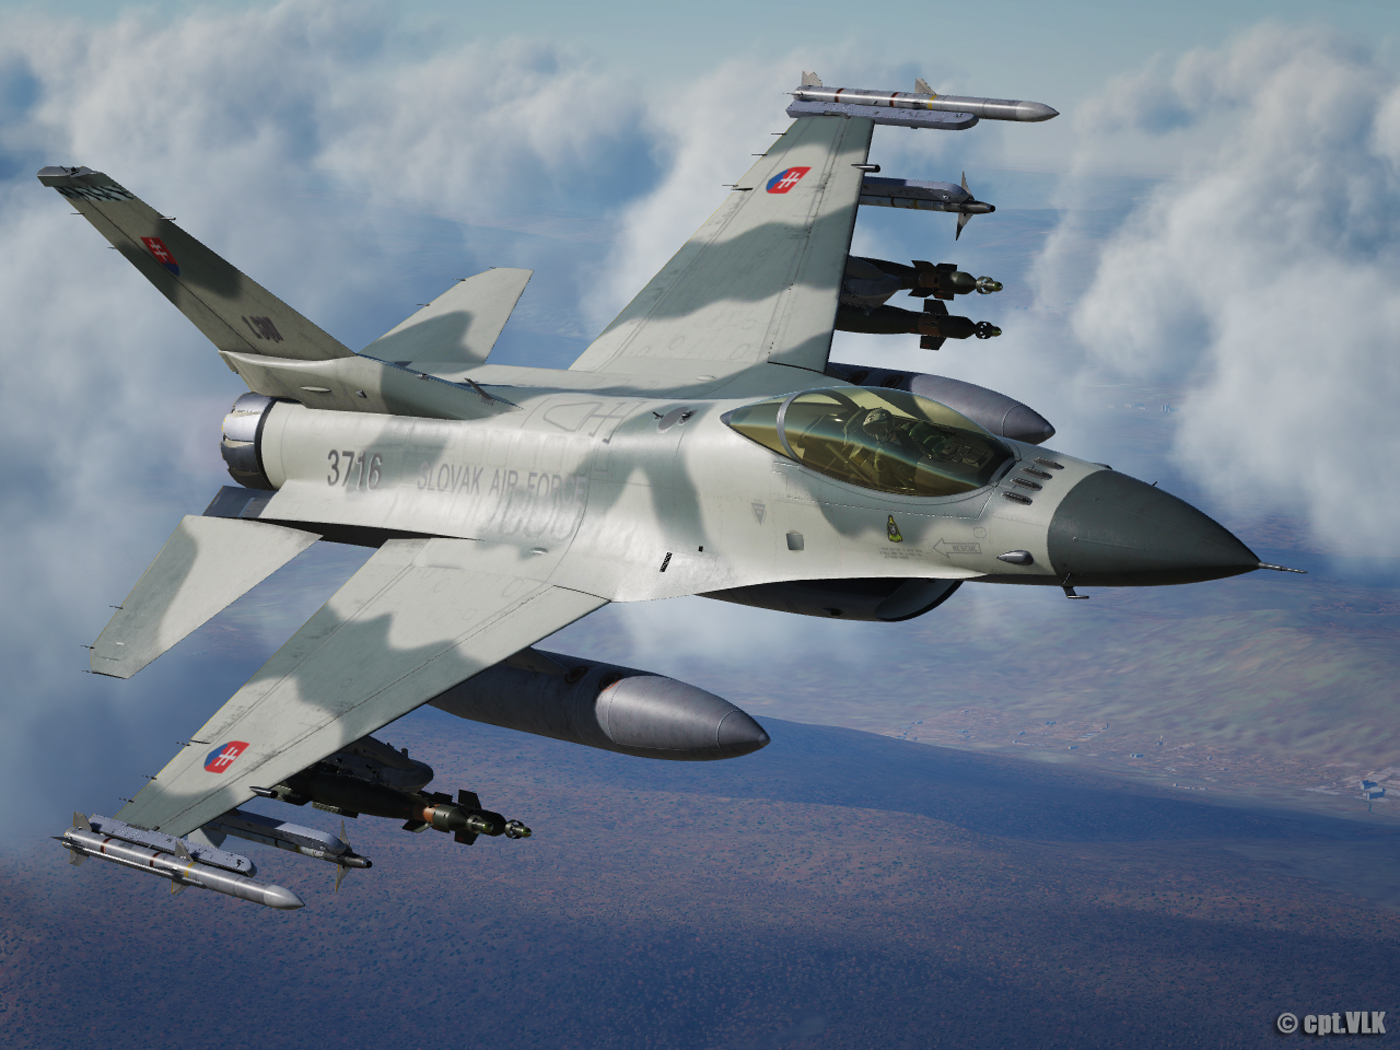 F-16C Slovak Air Force camouflage 3716